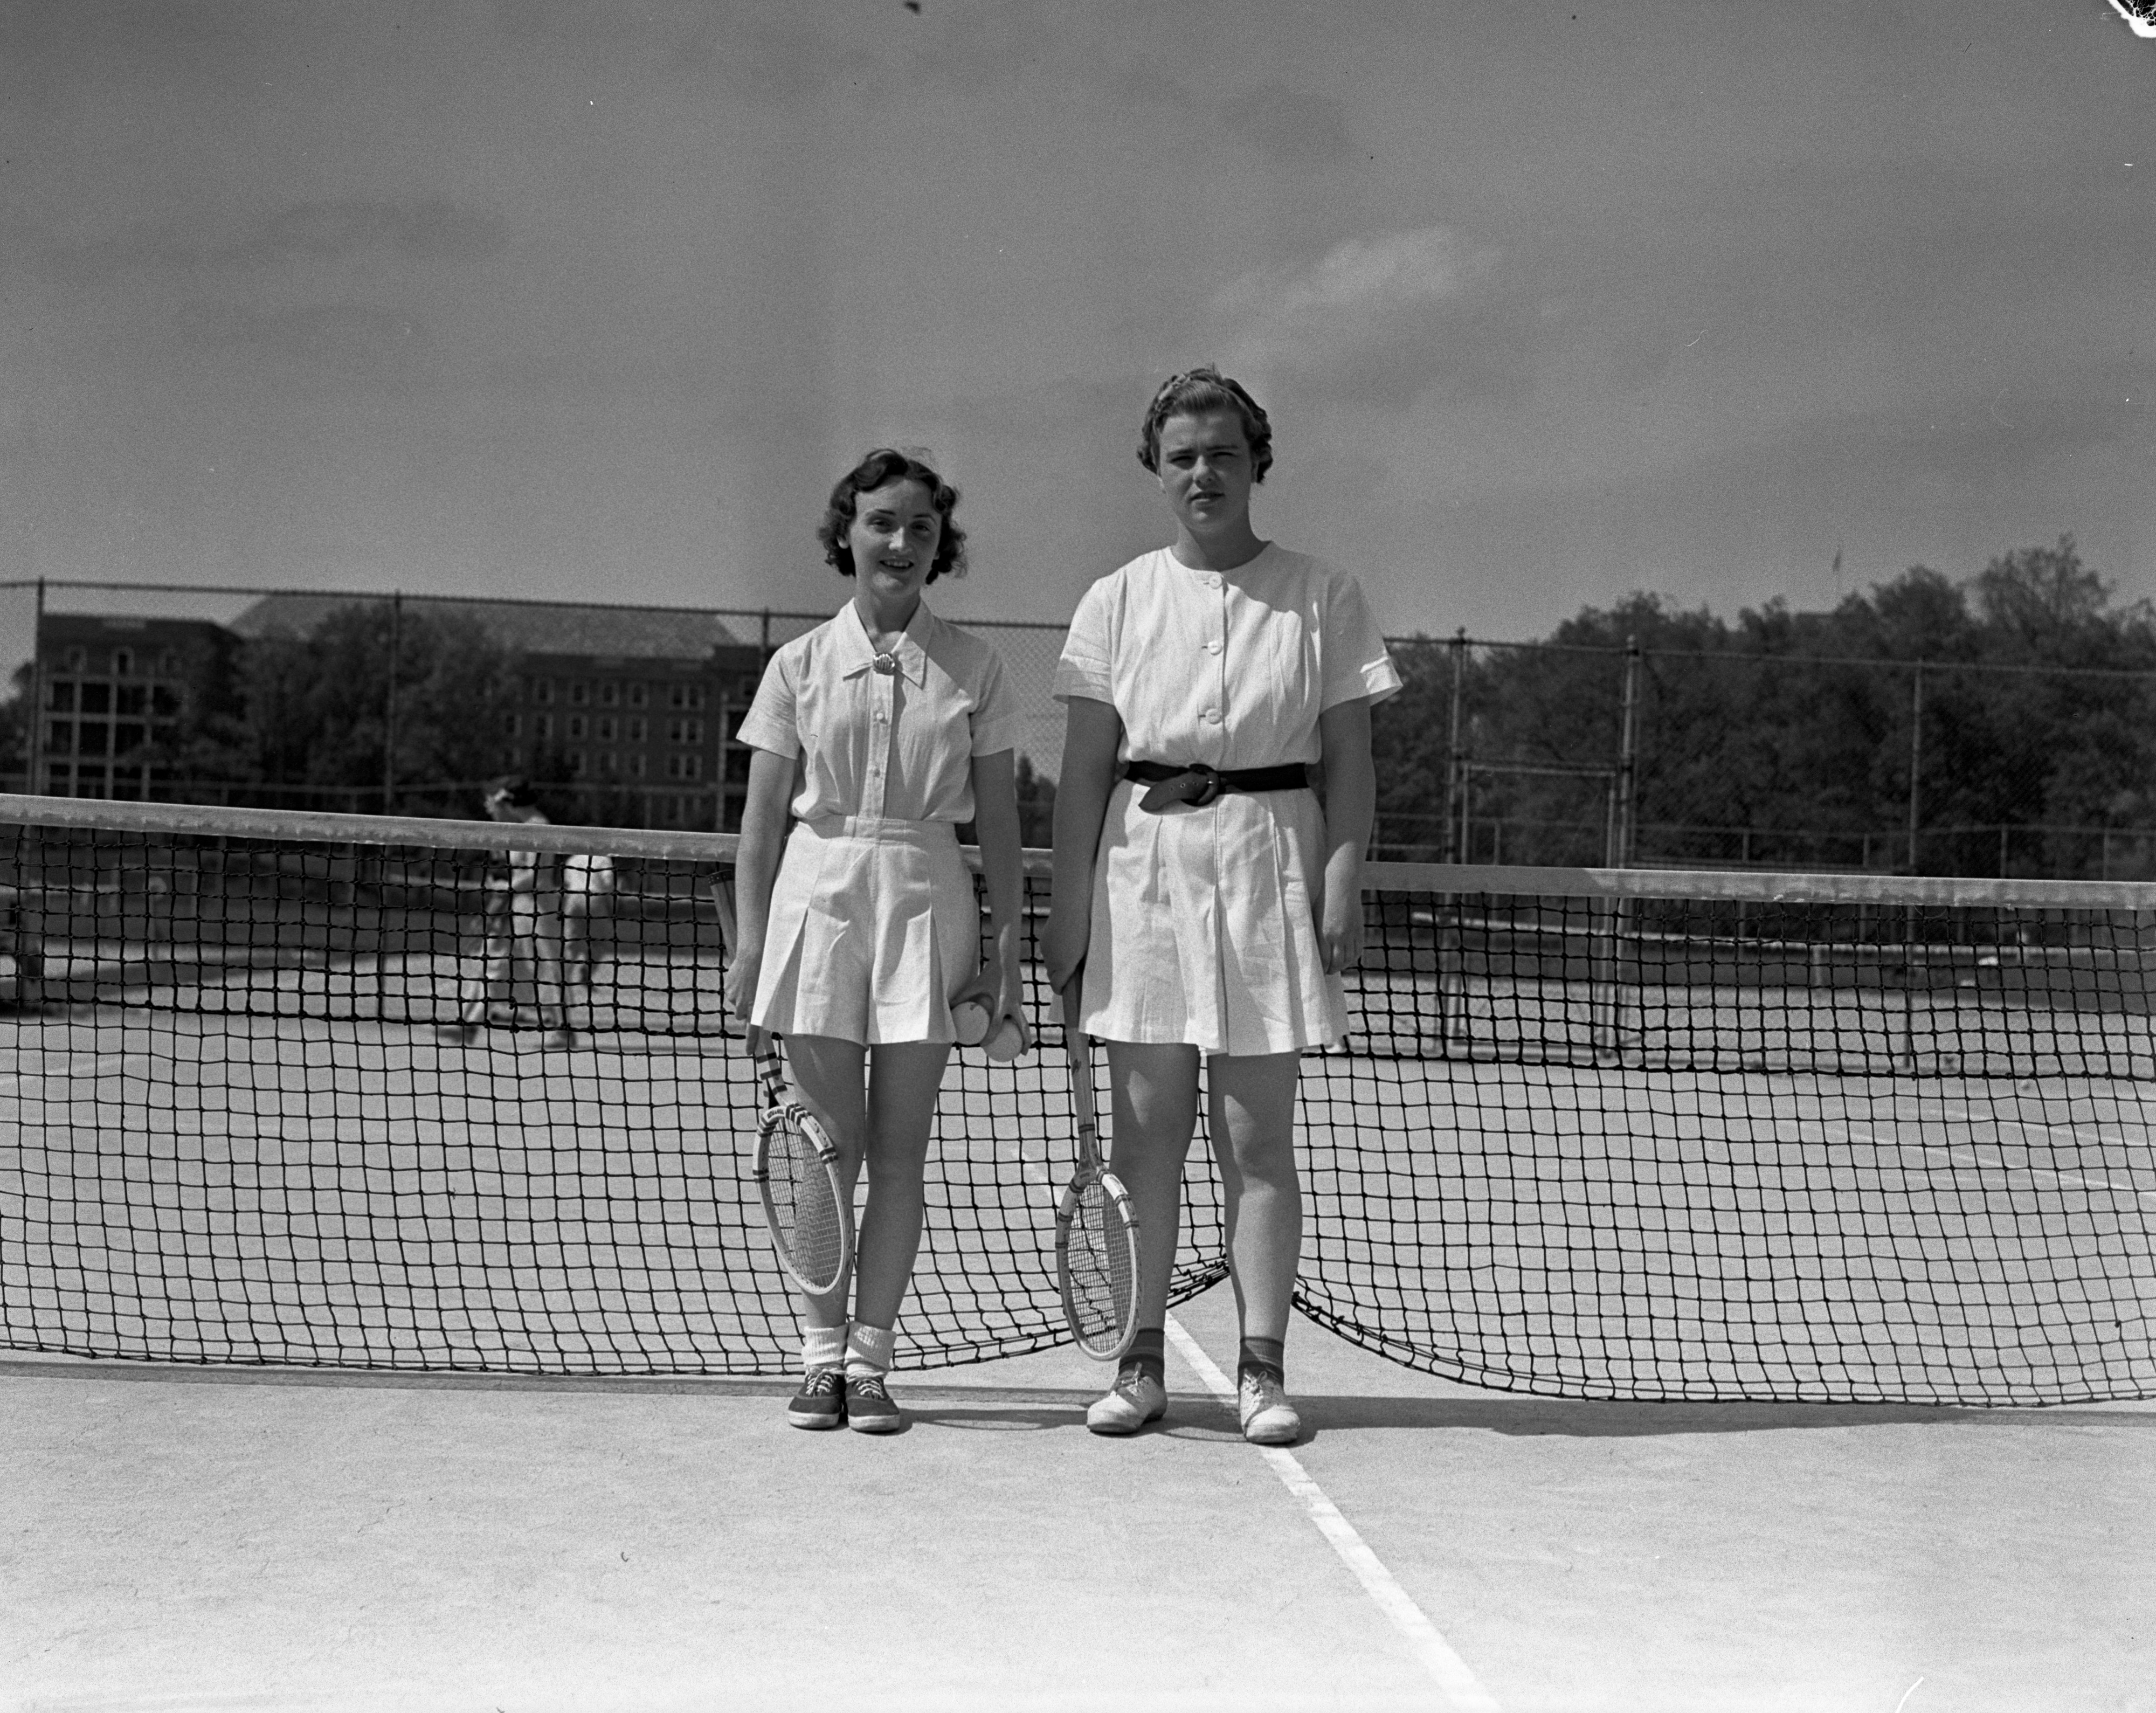 Merida Hobart and Catherine A. Sanders on the Palmer Field tennis courts, June 1937 image